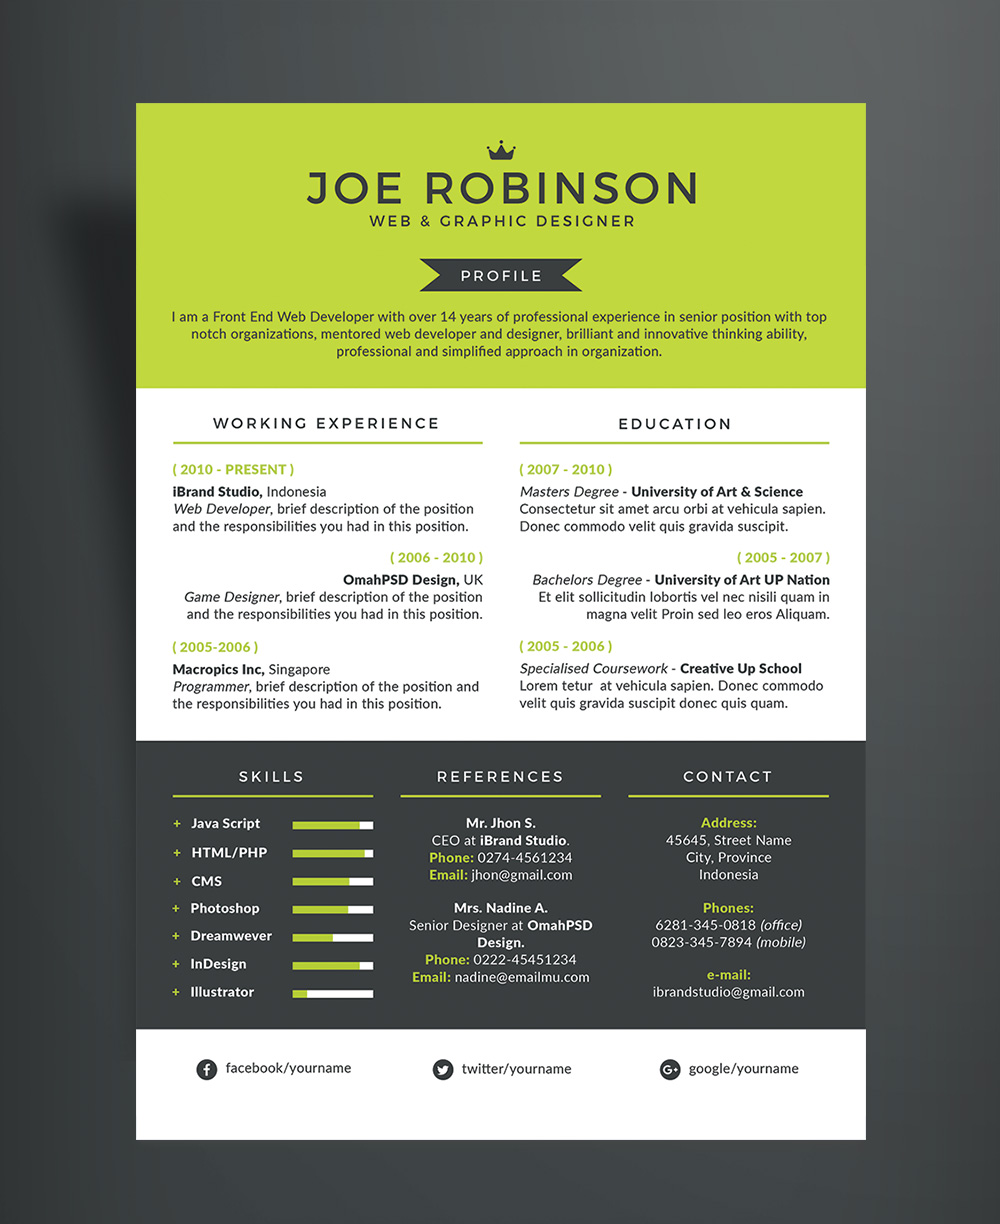 Free Elegant  Professional Resume CV Design Template in 3 Different Colors PSD File  Good Resume